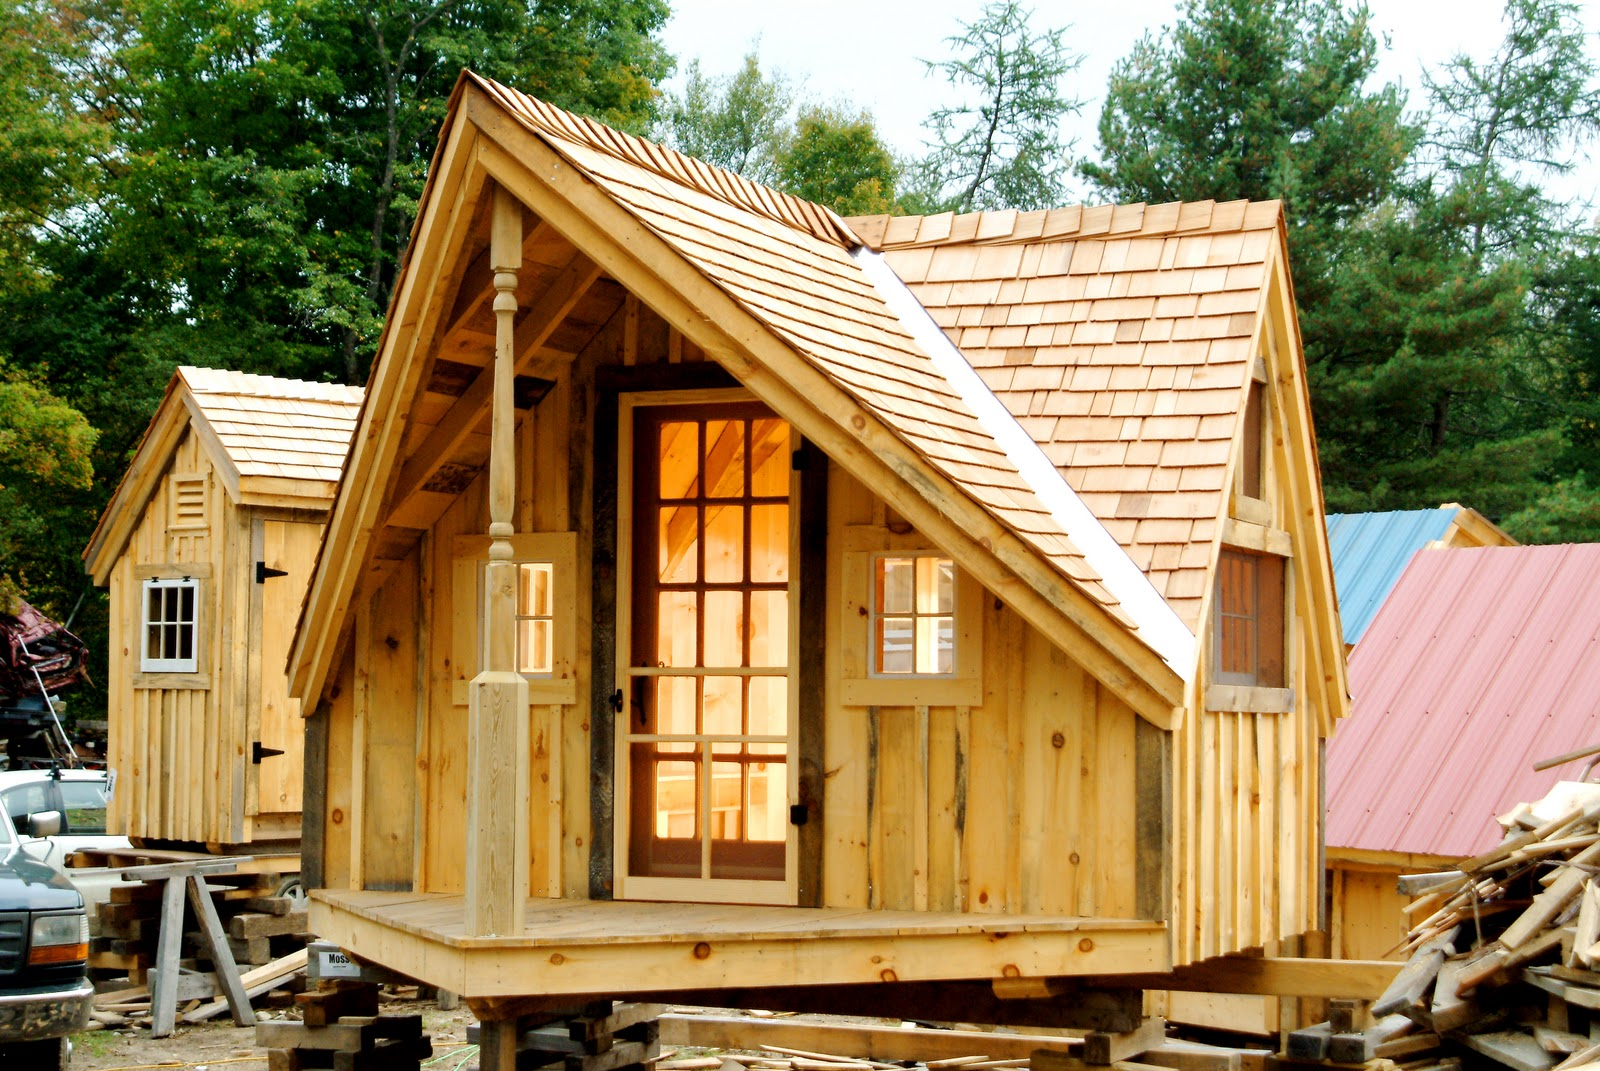 Relaxshacks.com: SIX FREE PLAN SETS for Tiny Houses/Cabins ...